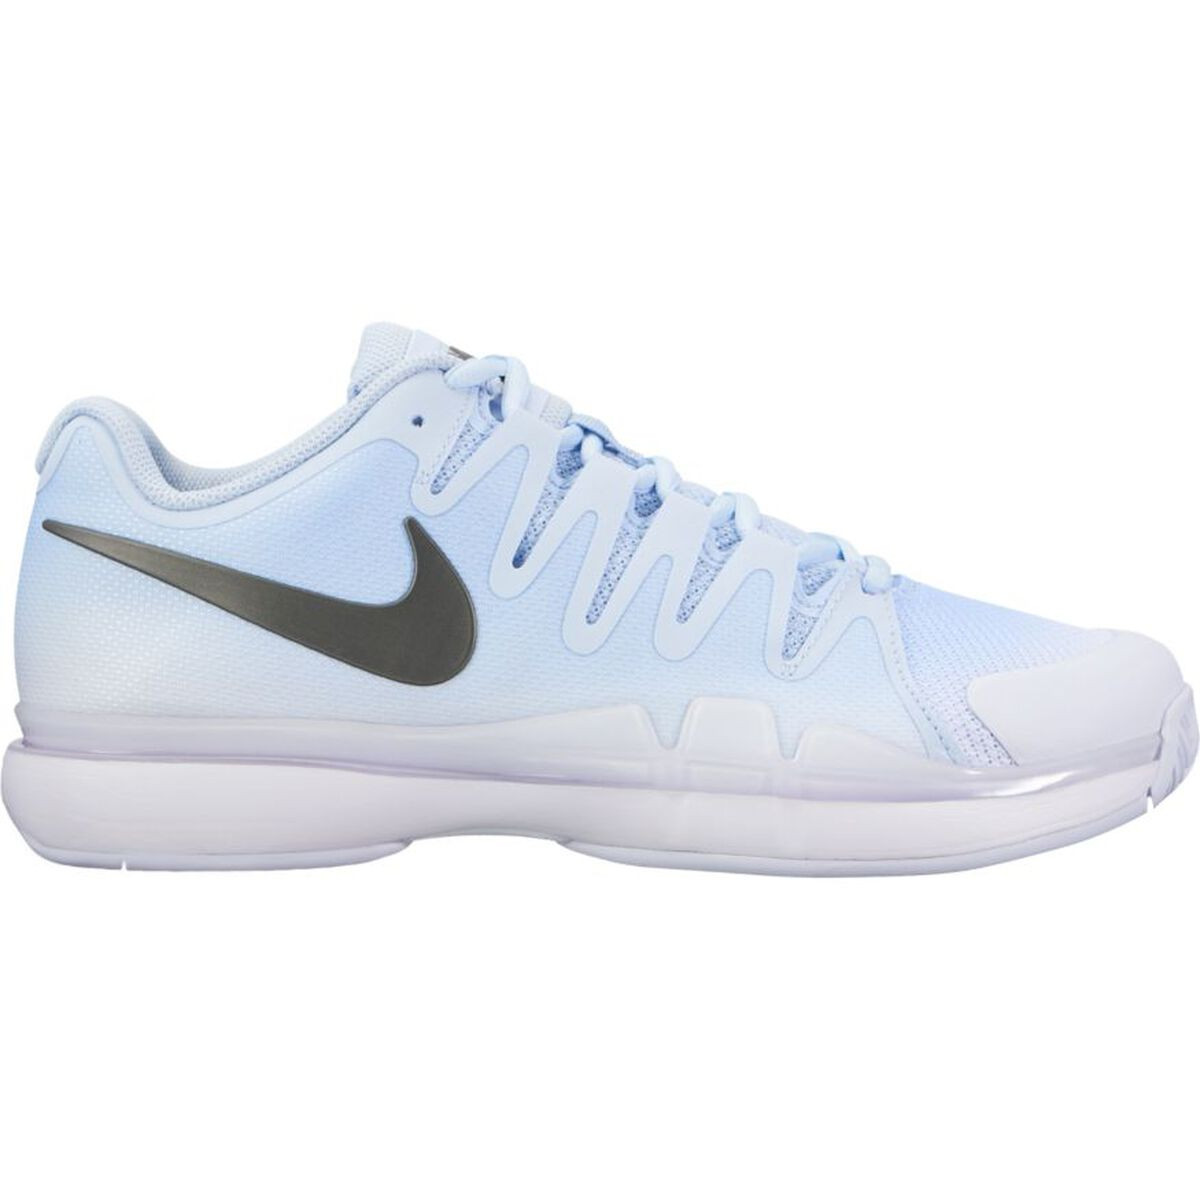 new concept 94105 50660 Images. Nike Zoom Vapor 9.5 ...